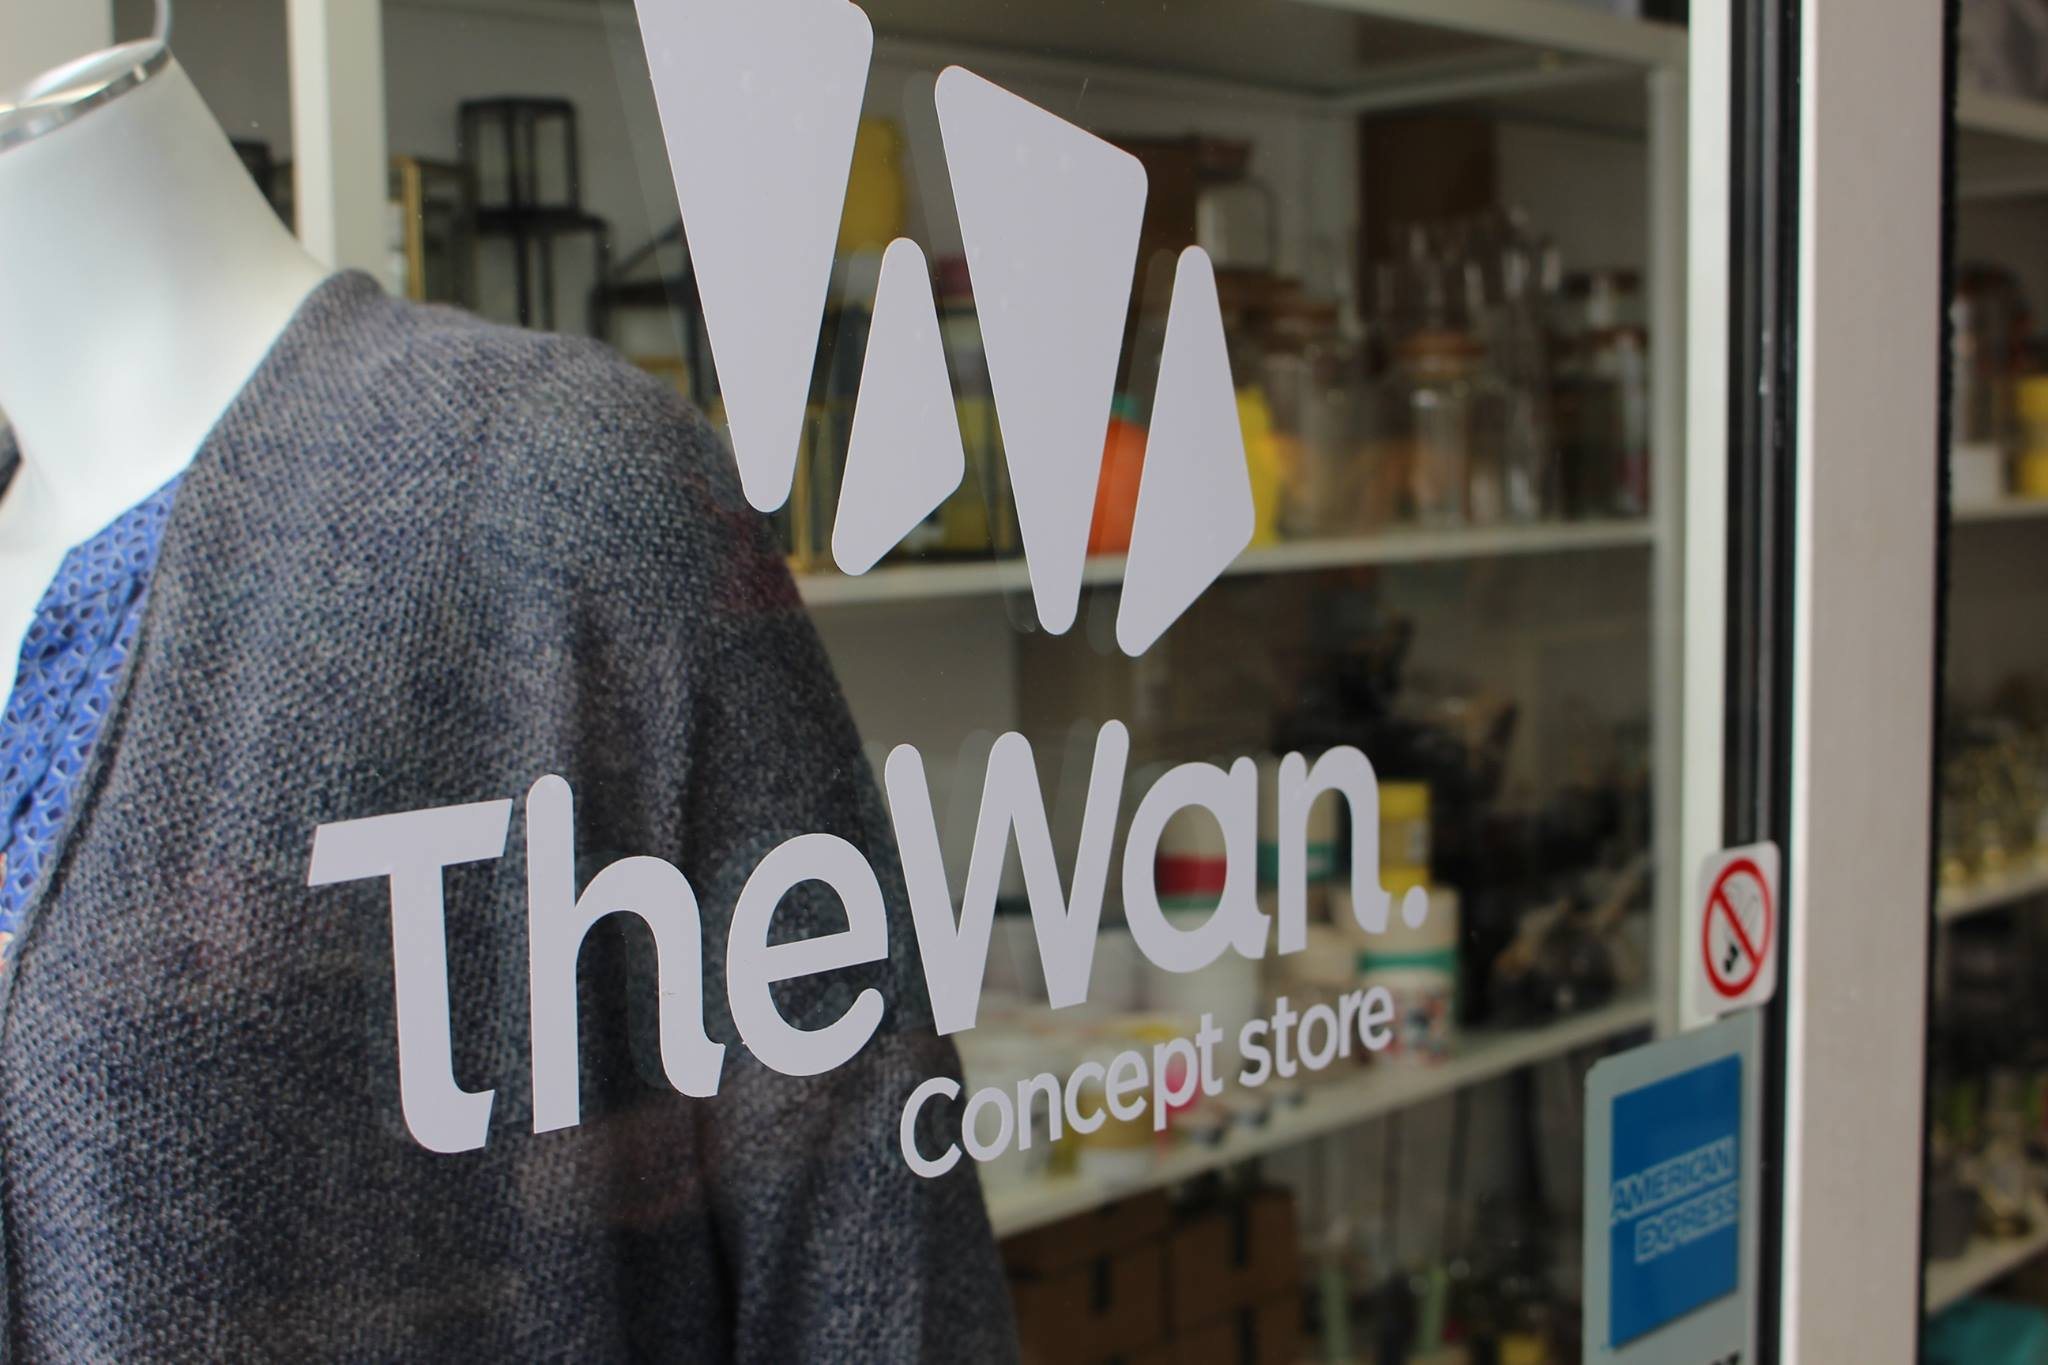 The Wan Concept Store